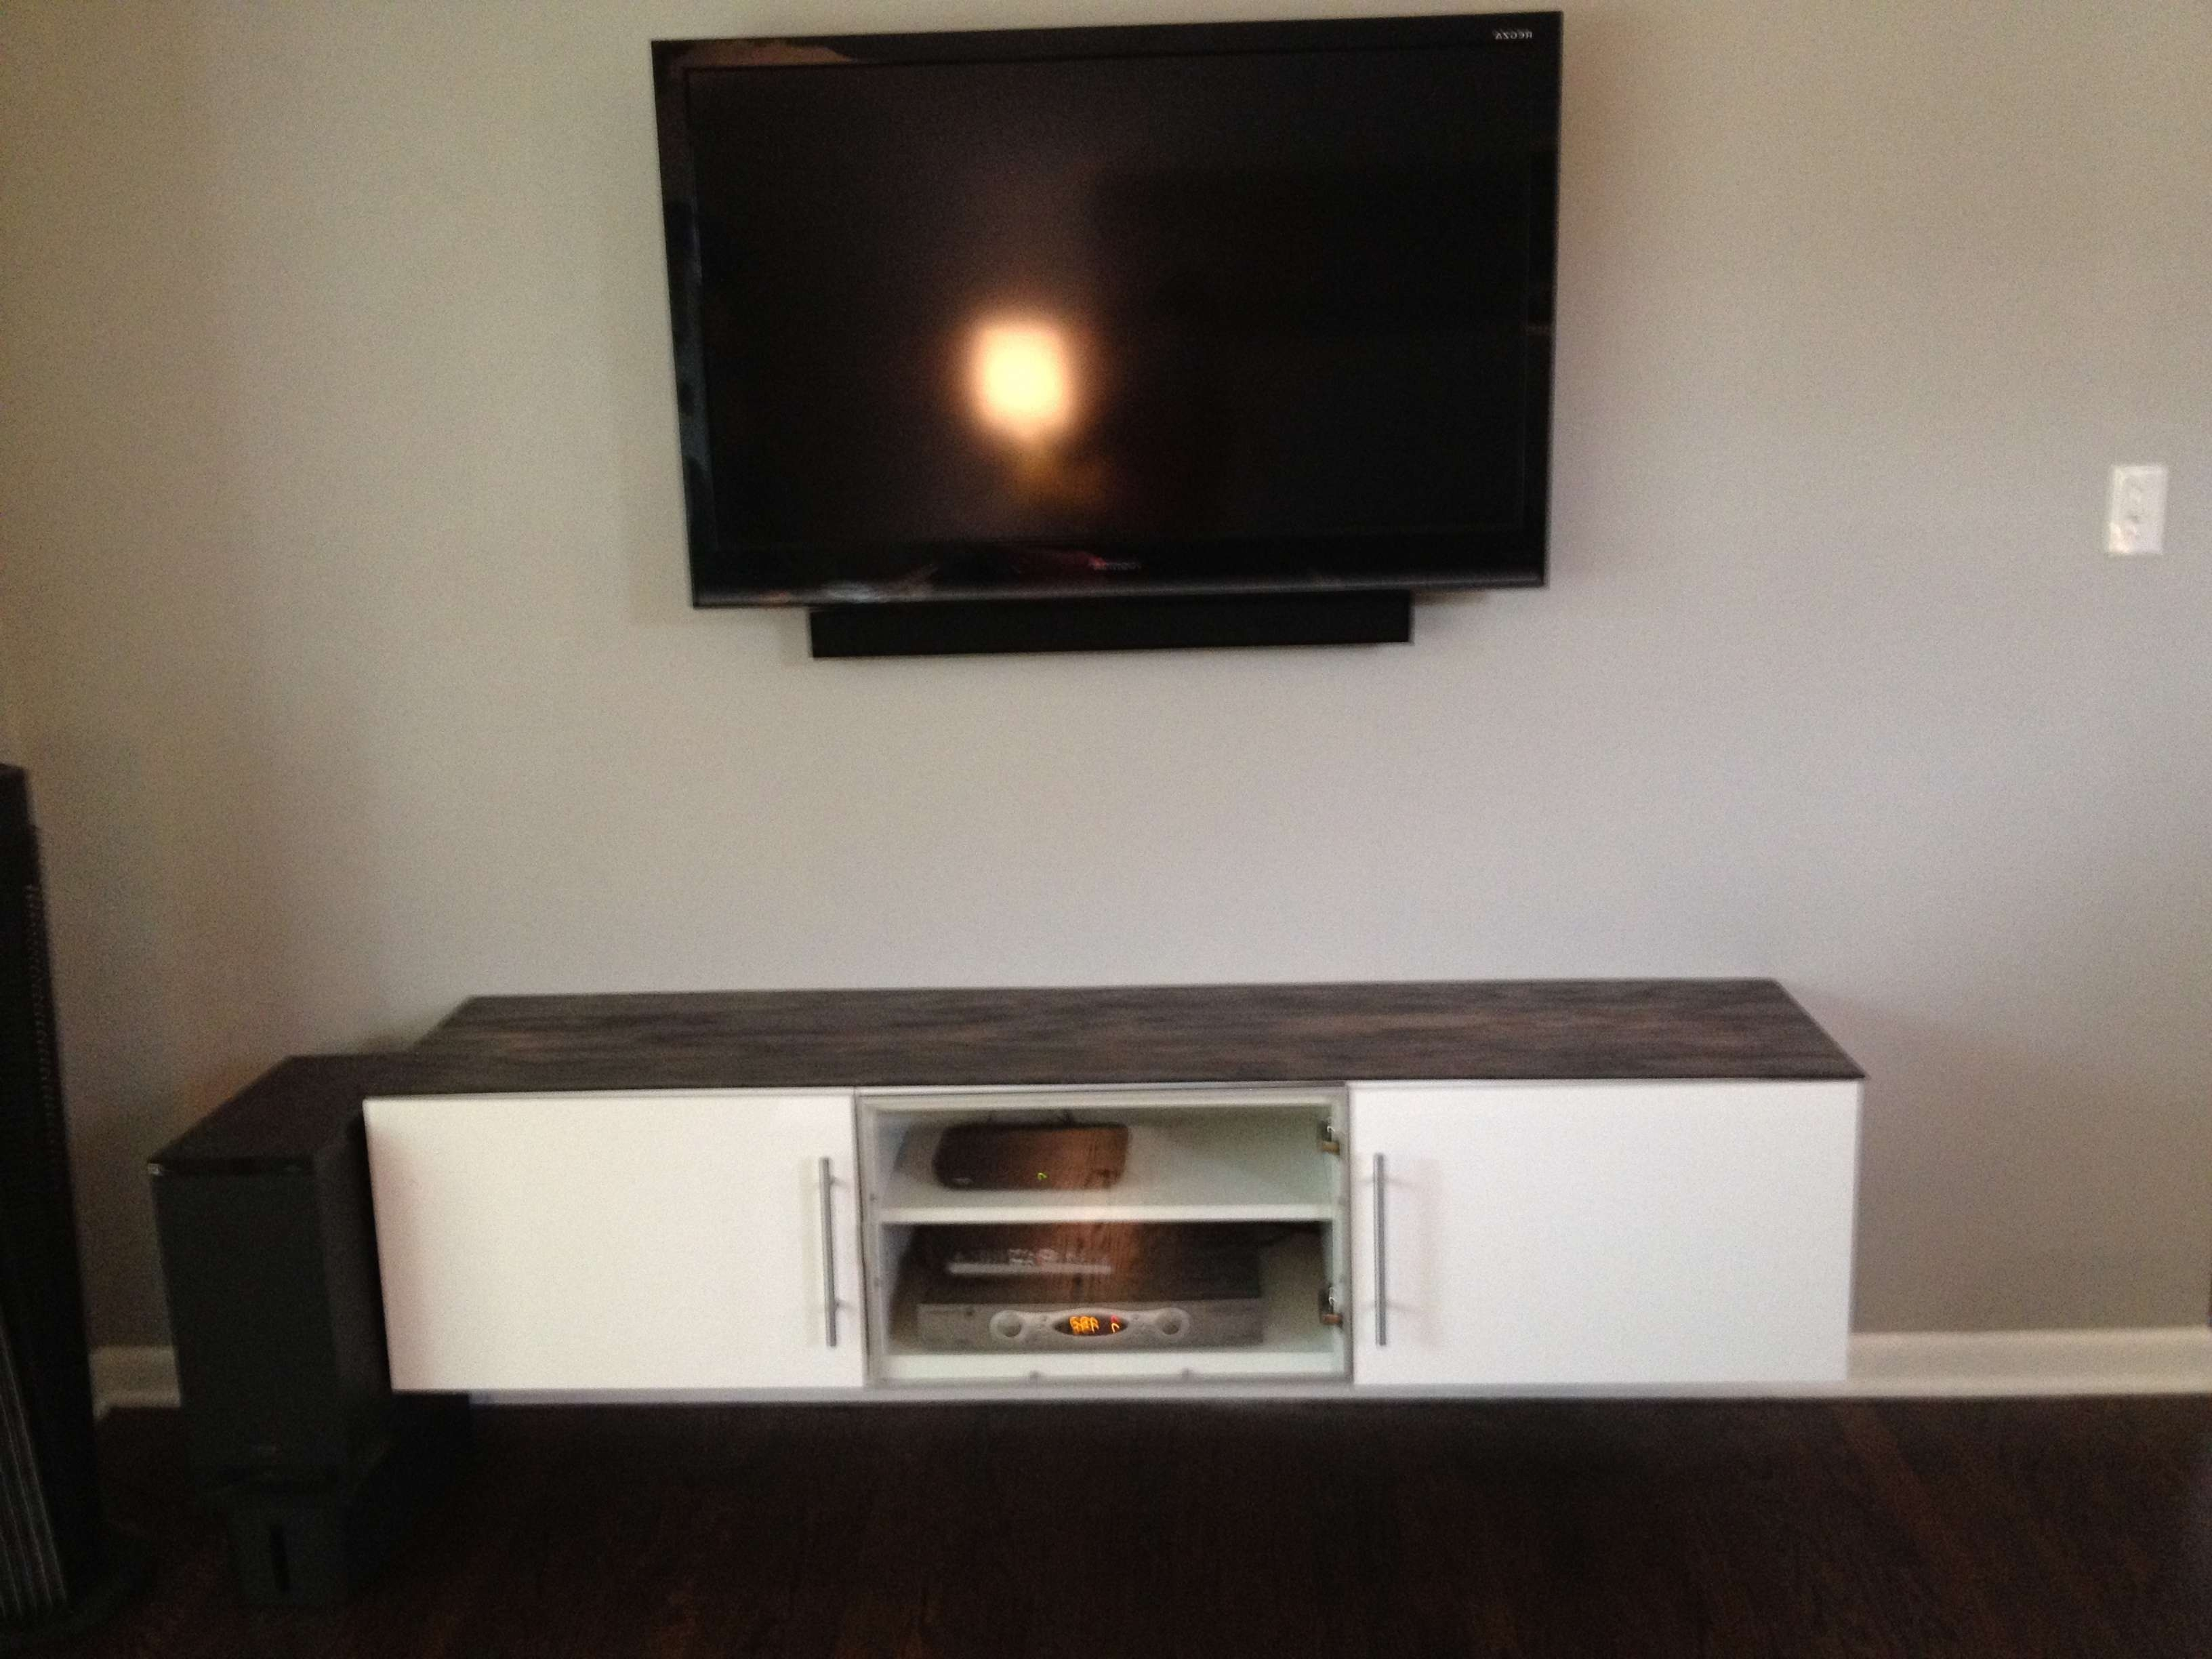 White Wooden Cabinet With Grey Top On Laminate Flooring Plus Regarding Wall Mounted Tv Cabinets Ikea (View 6 of 20)